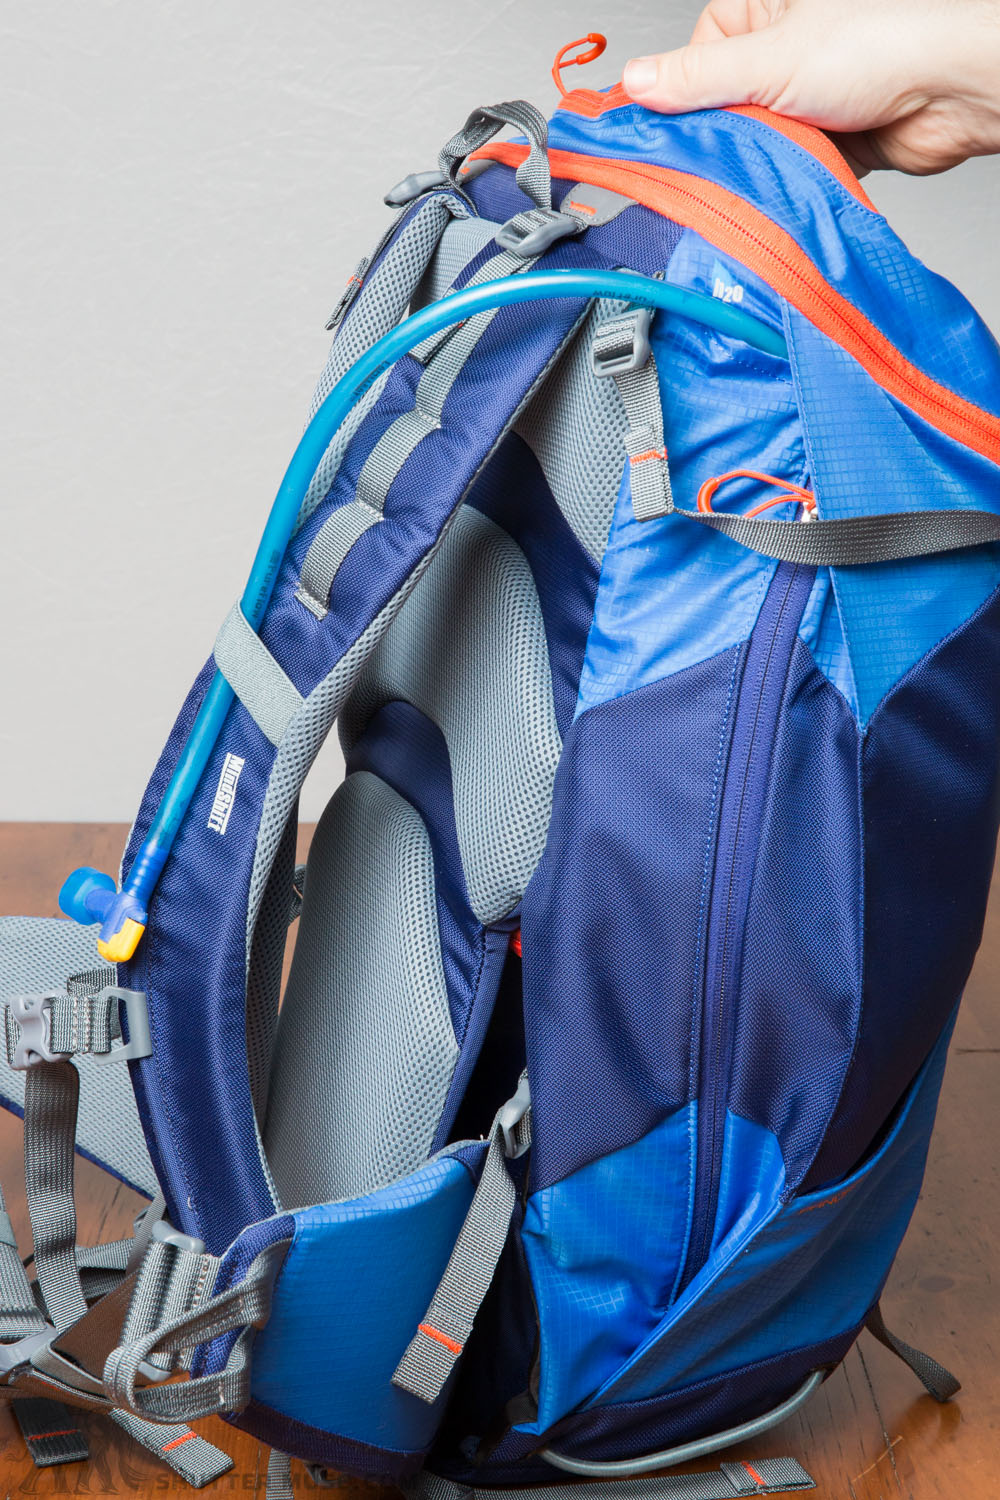 Mindshift Gear Rotation 180 Panorama Review Camera Backpack